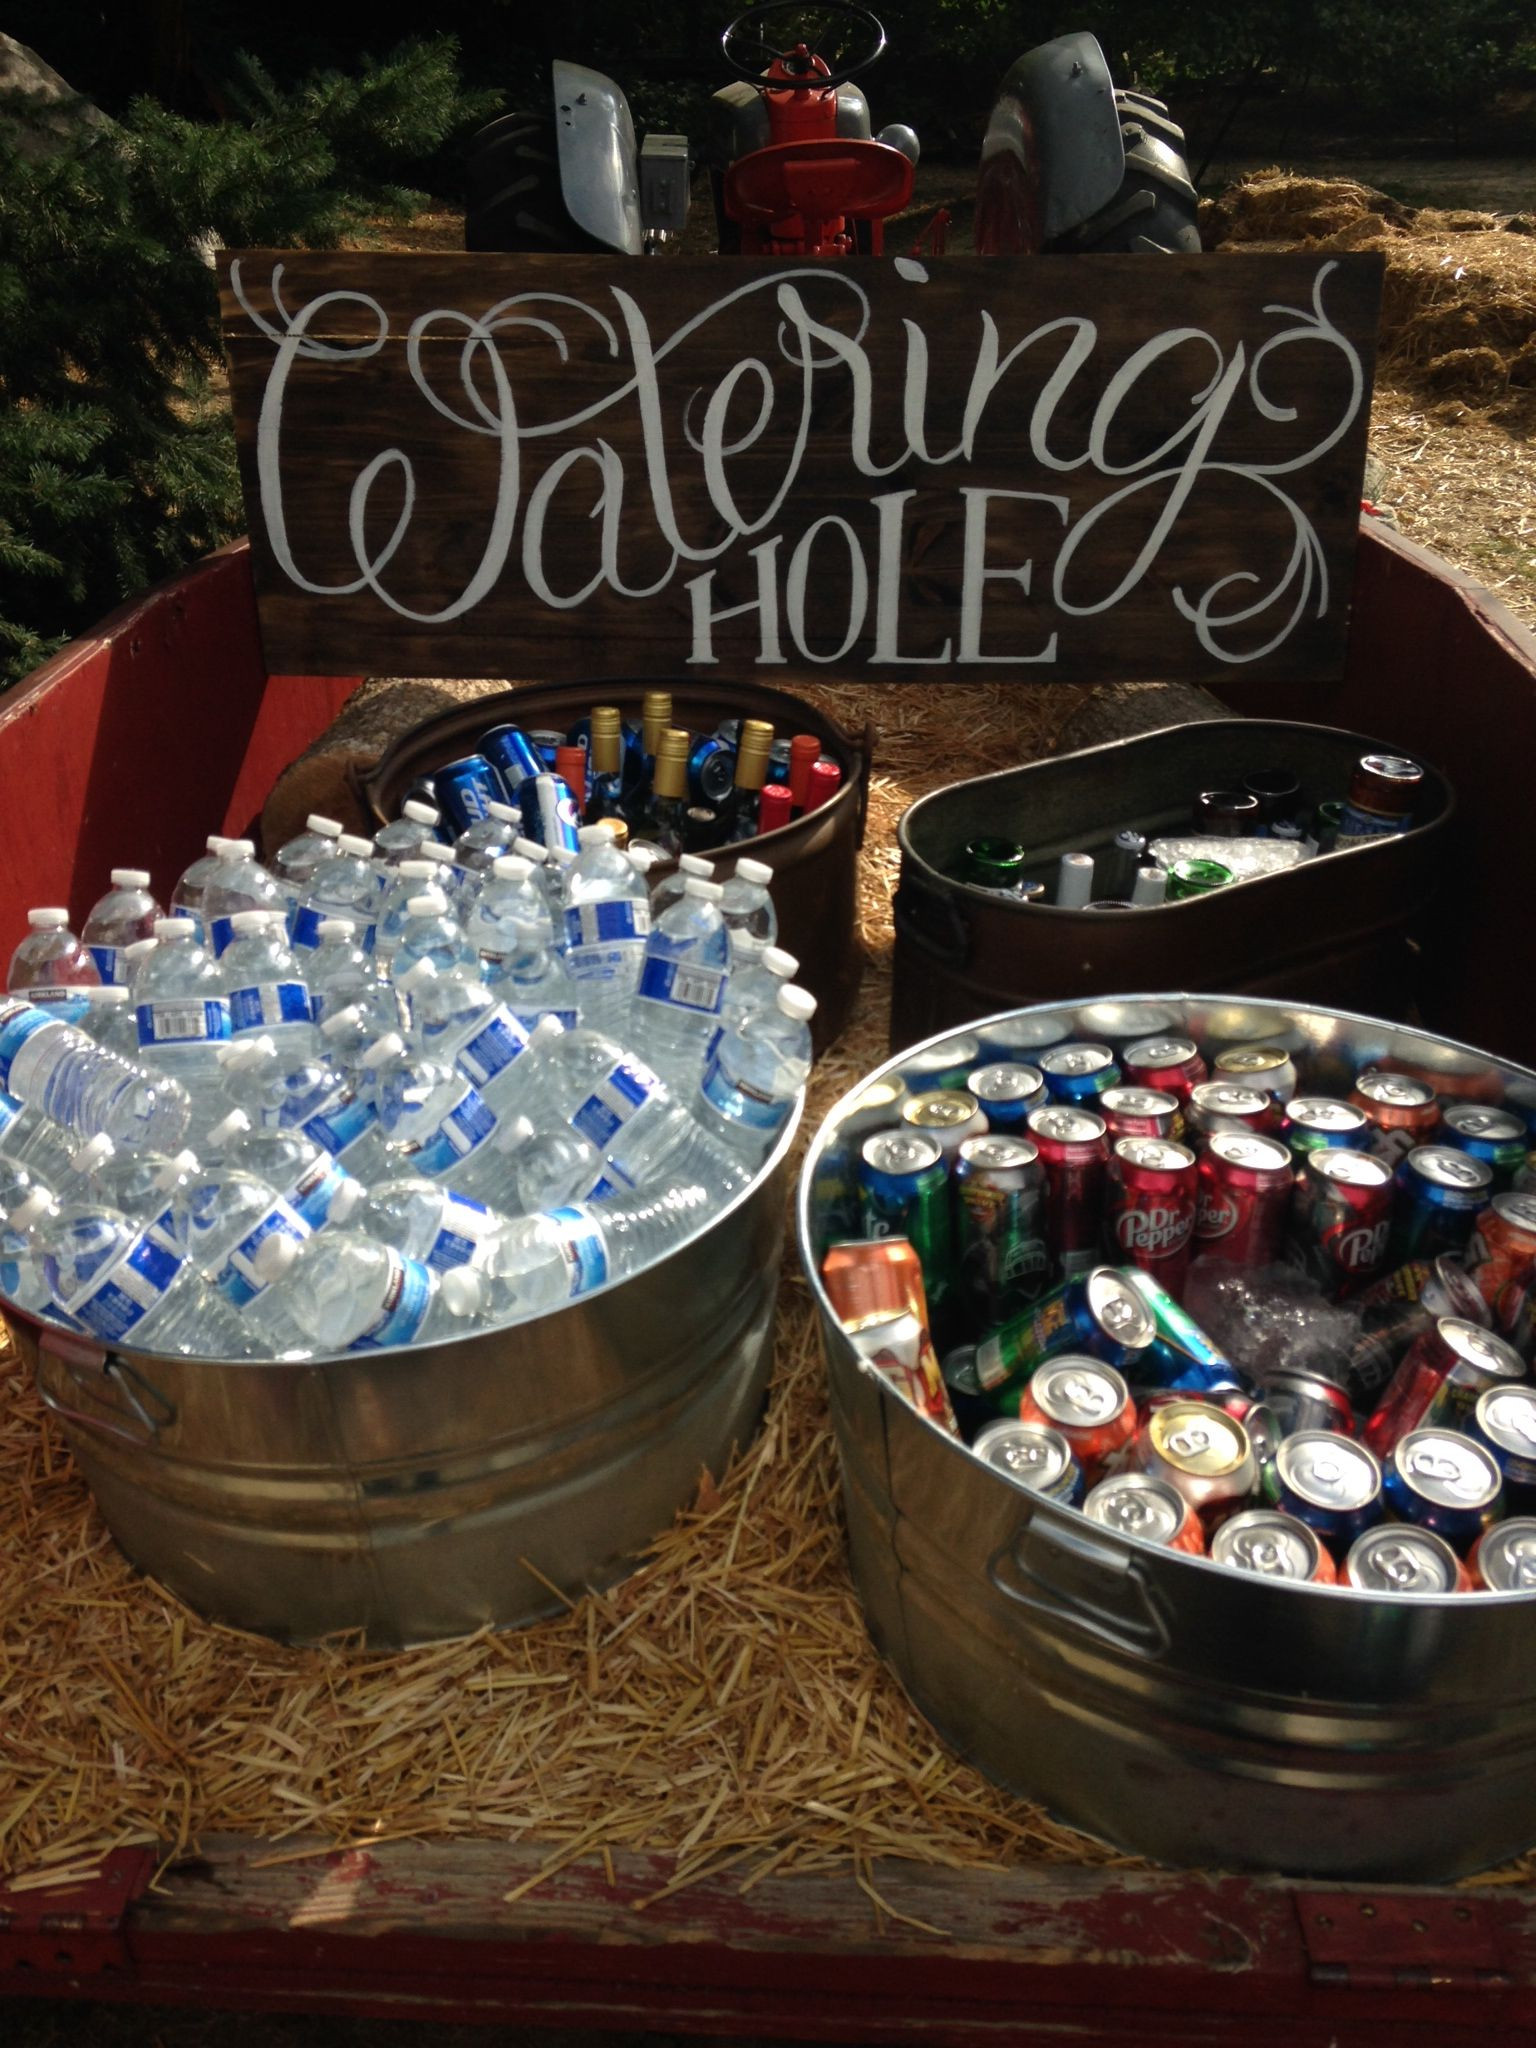 Best ideas about Adult Birthday Party Themes . Save or Pin Watering hole sign My husband made this sign for me Now.